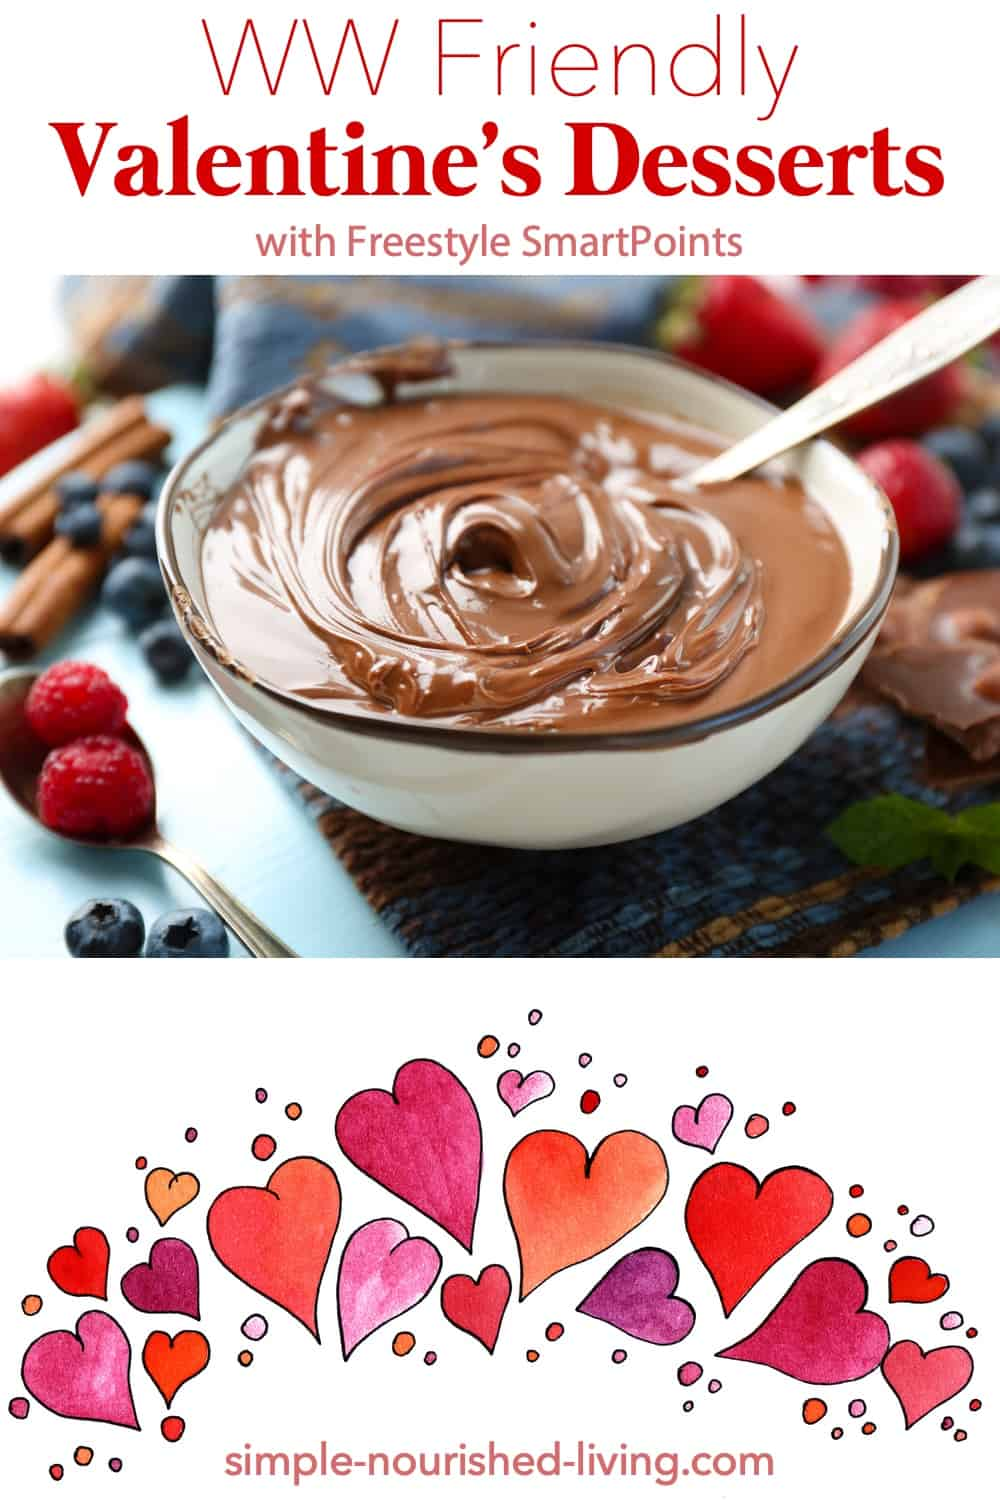 It's just not Valentine's Day without a little sweet treat. This list of Weight Watchers friendly desserts with Freestyle SmartPoints will help you to not overdo it! #wwfreestylevalentinesdesserts #freestyledesserts #ww #wwdessert #weightwatchers #wwfamily